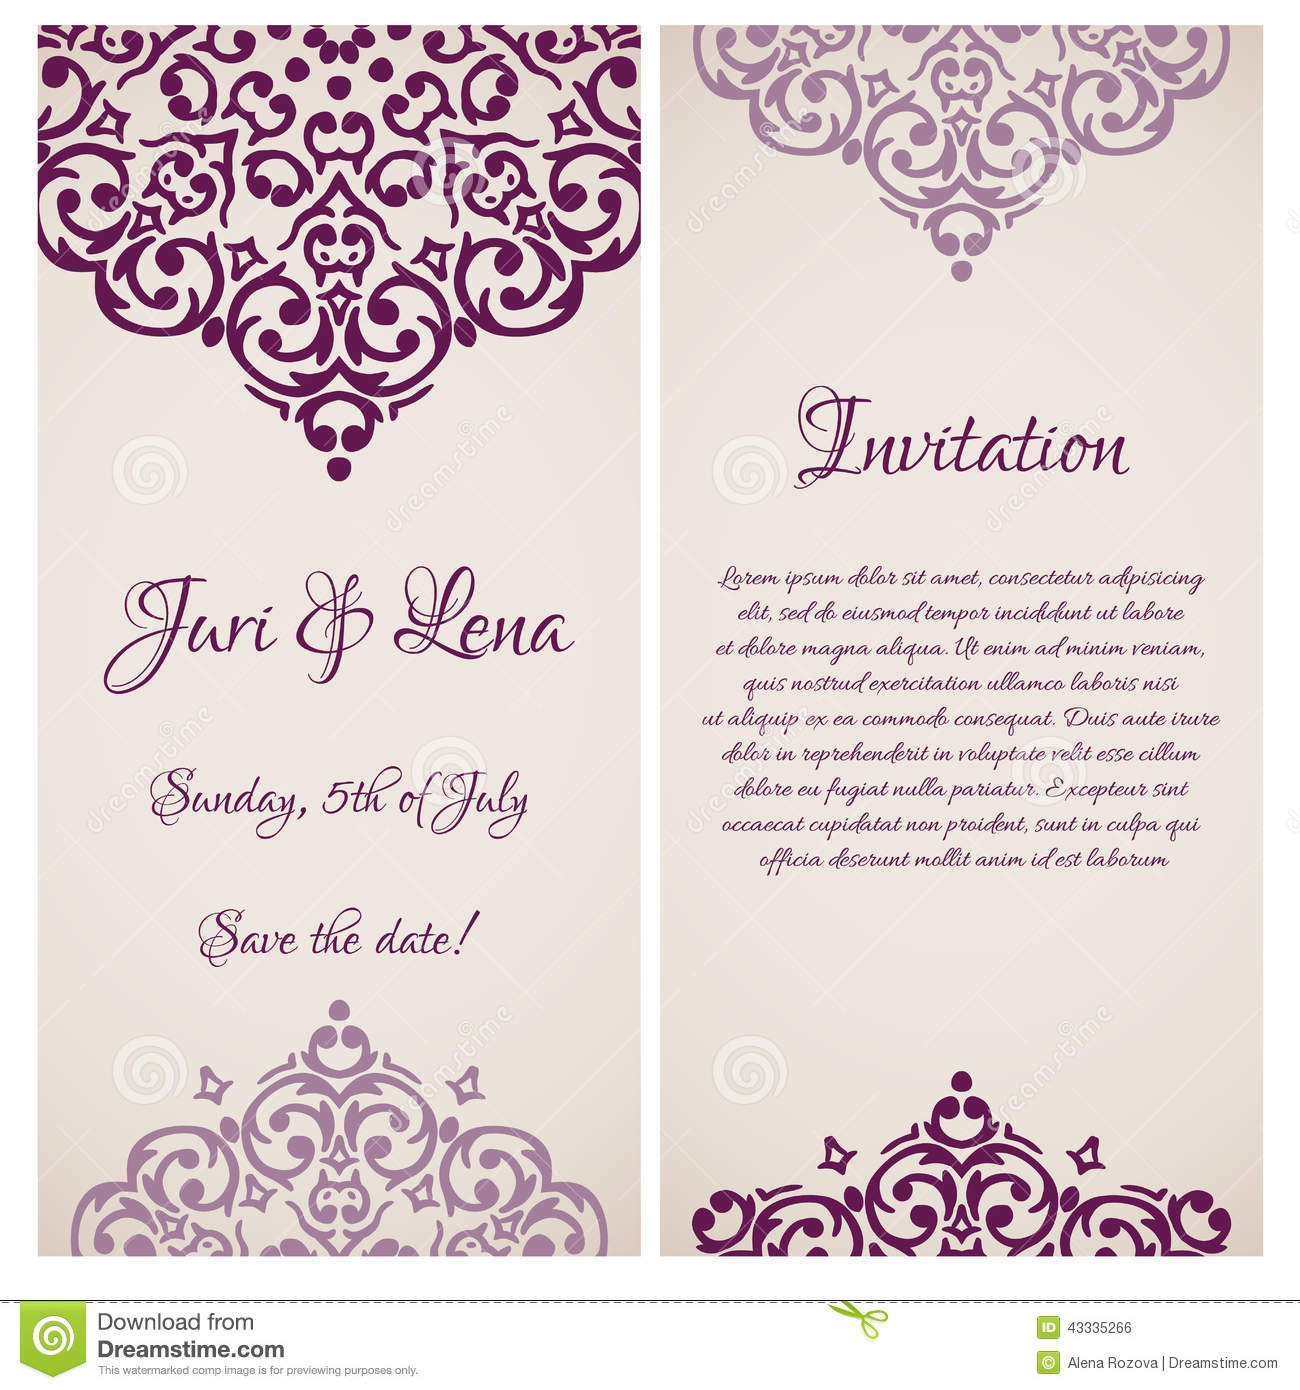 Baroque damask wedding invitation banners stock vector baroque damask wedding invitation banners royalty free vector stopboris Images